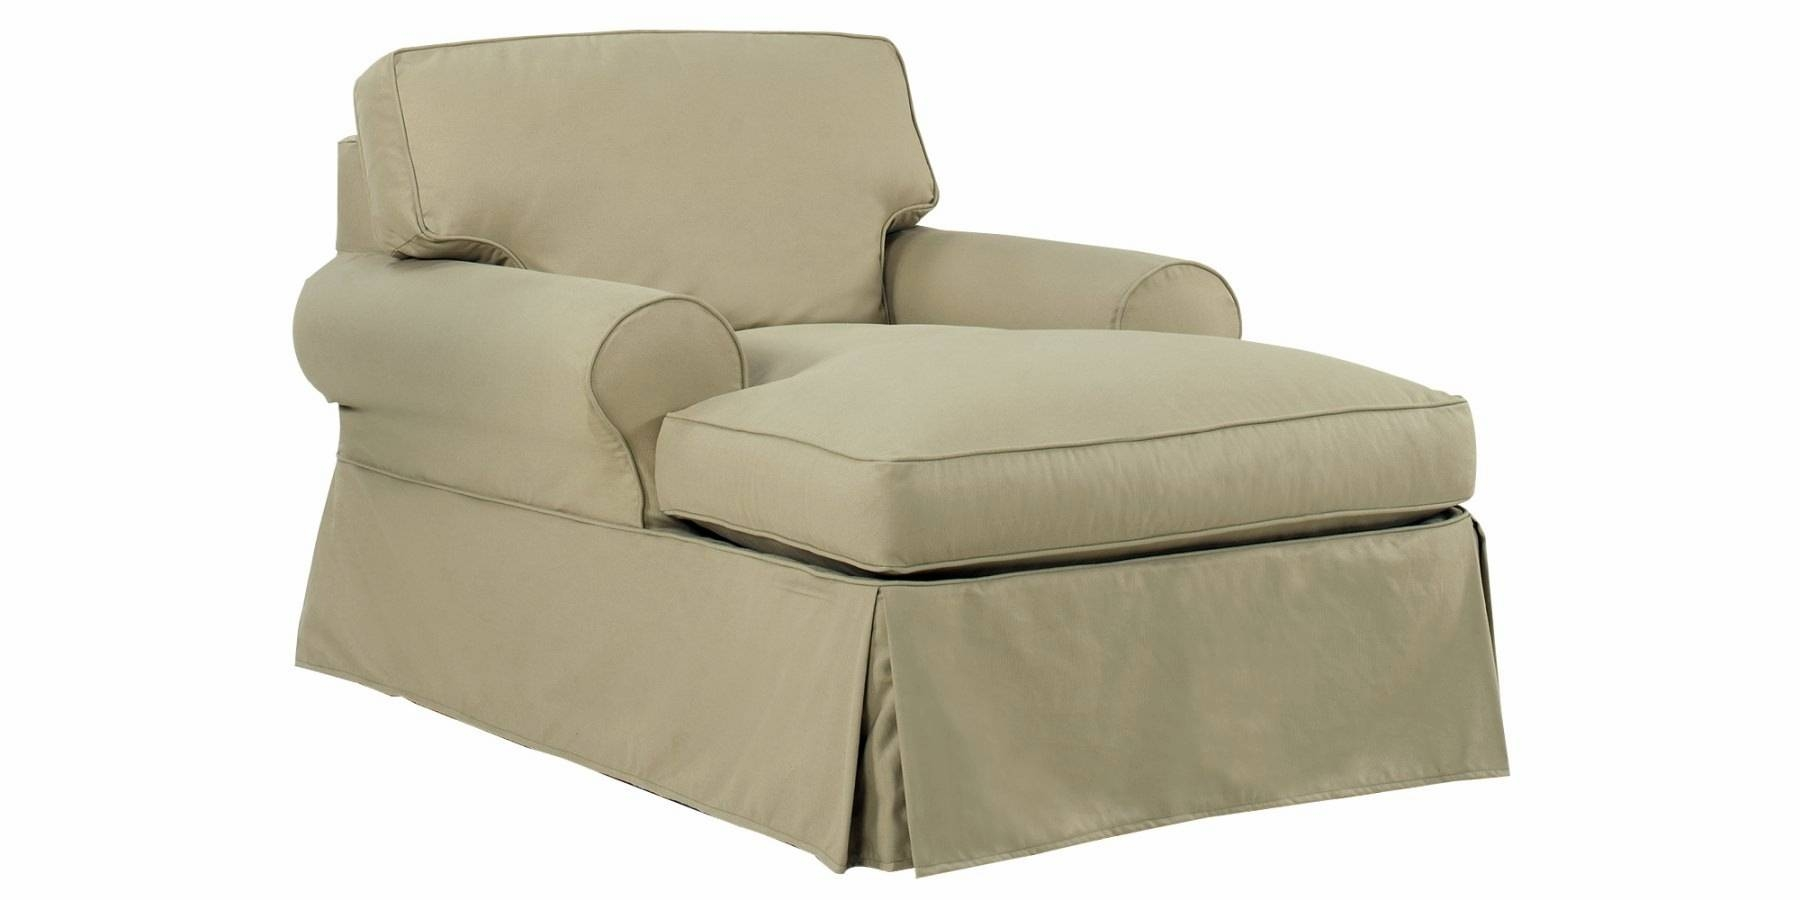 Slip Covers Chair And Quality Interiors | Sofa Slipcover | Chair Within Sofa And Chair Covers (View 25 of 30)